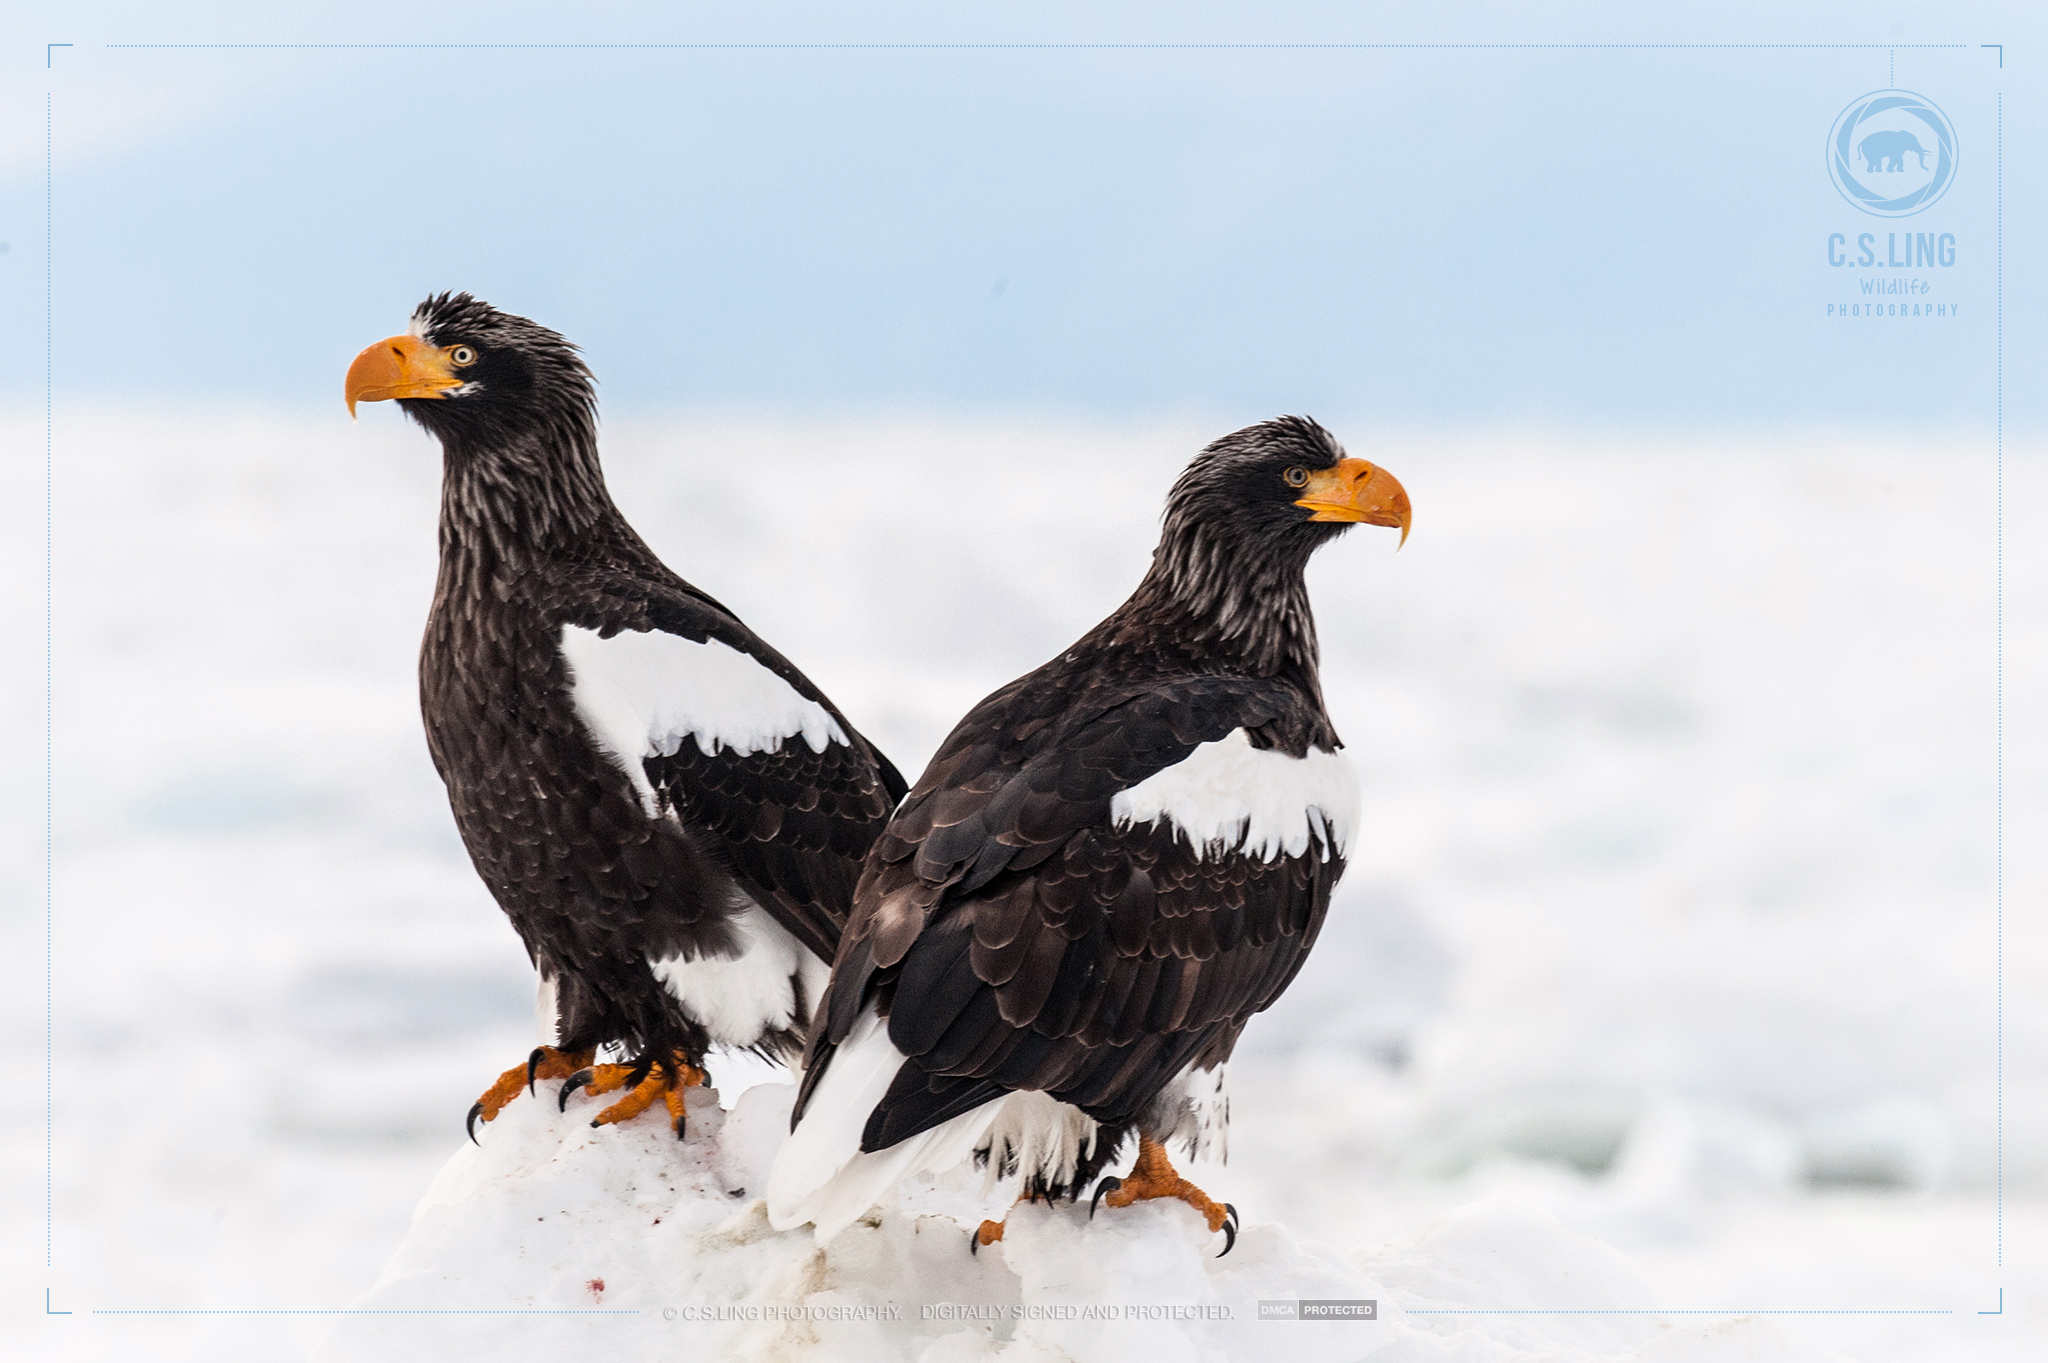 Steller's Sea Eagles in Japan | Wildlife Photography